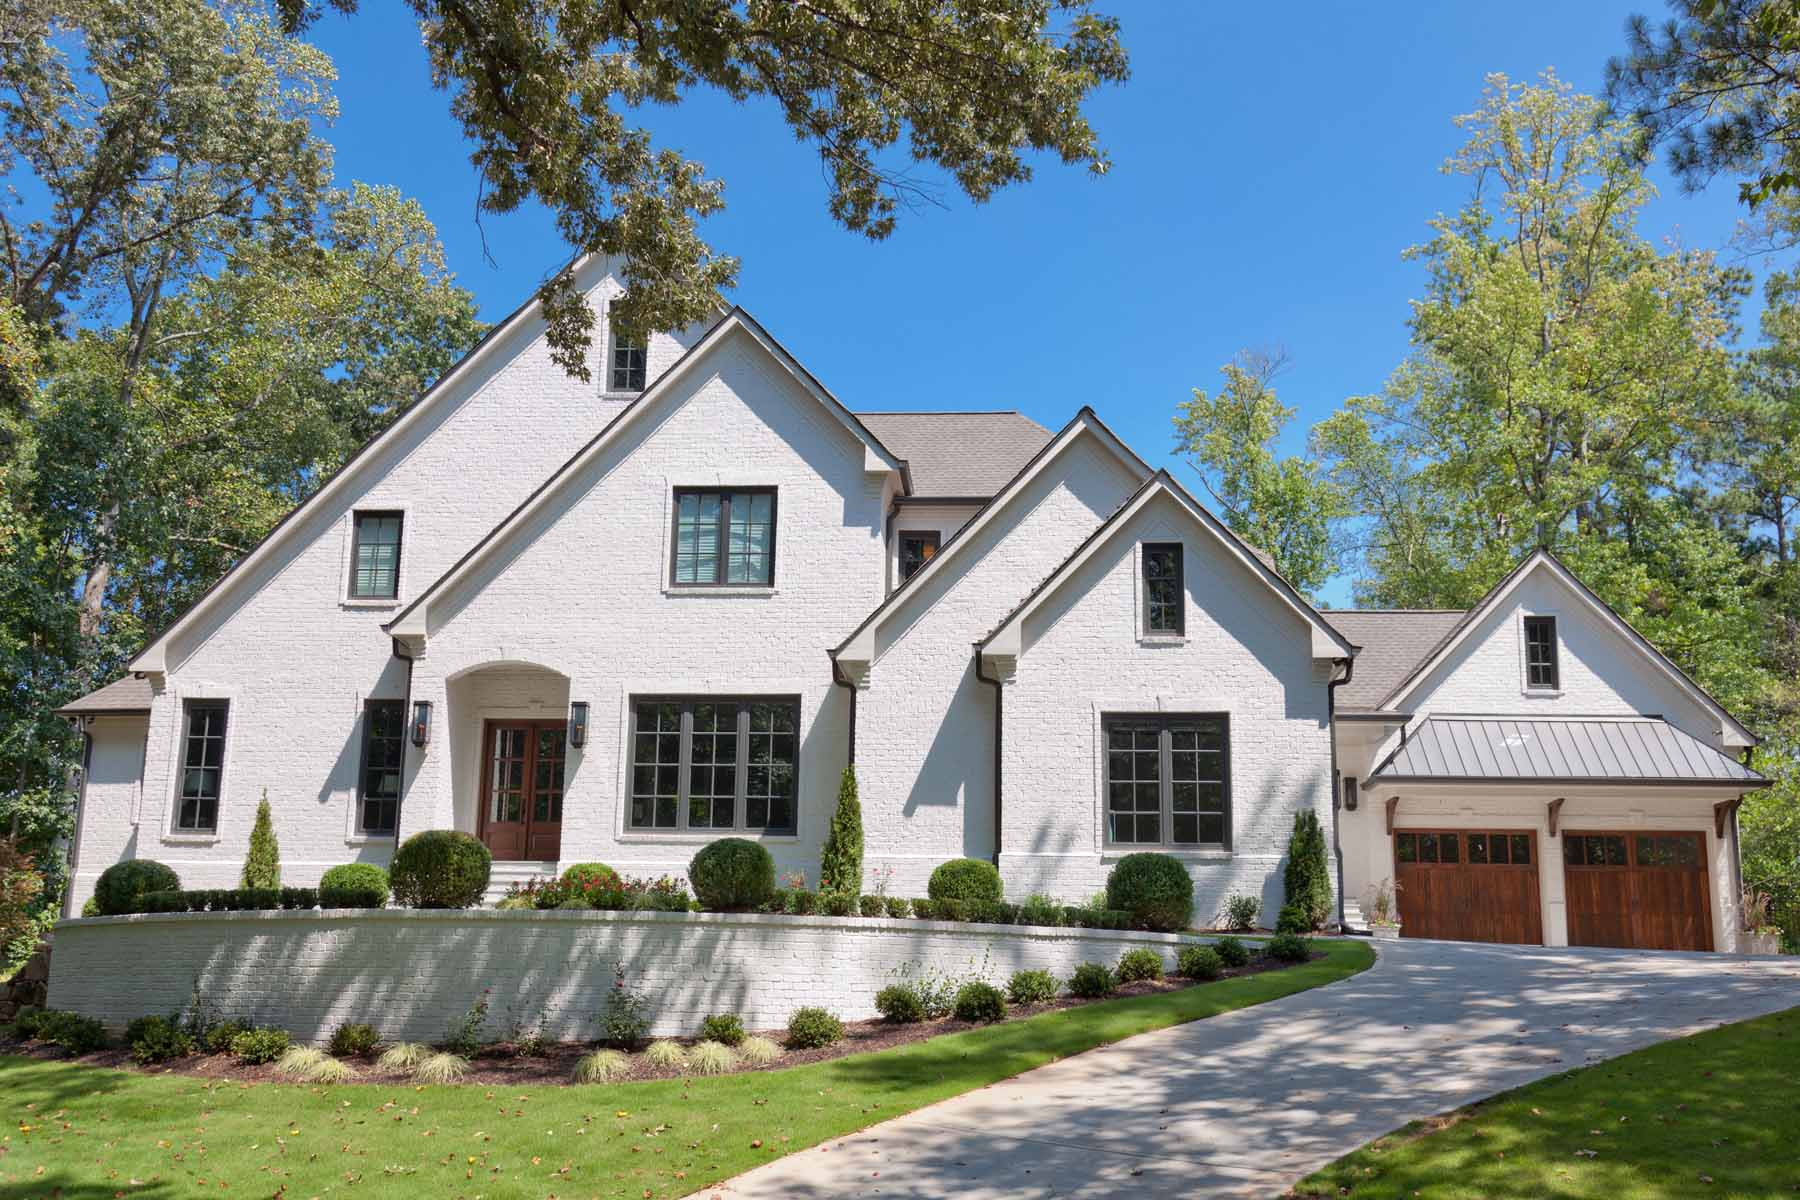 独户住宅 为 销售 在 New Custom Build in Sandy Springs 540 Carriage Drive Atlanta, 乔治亚州 30328 美国